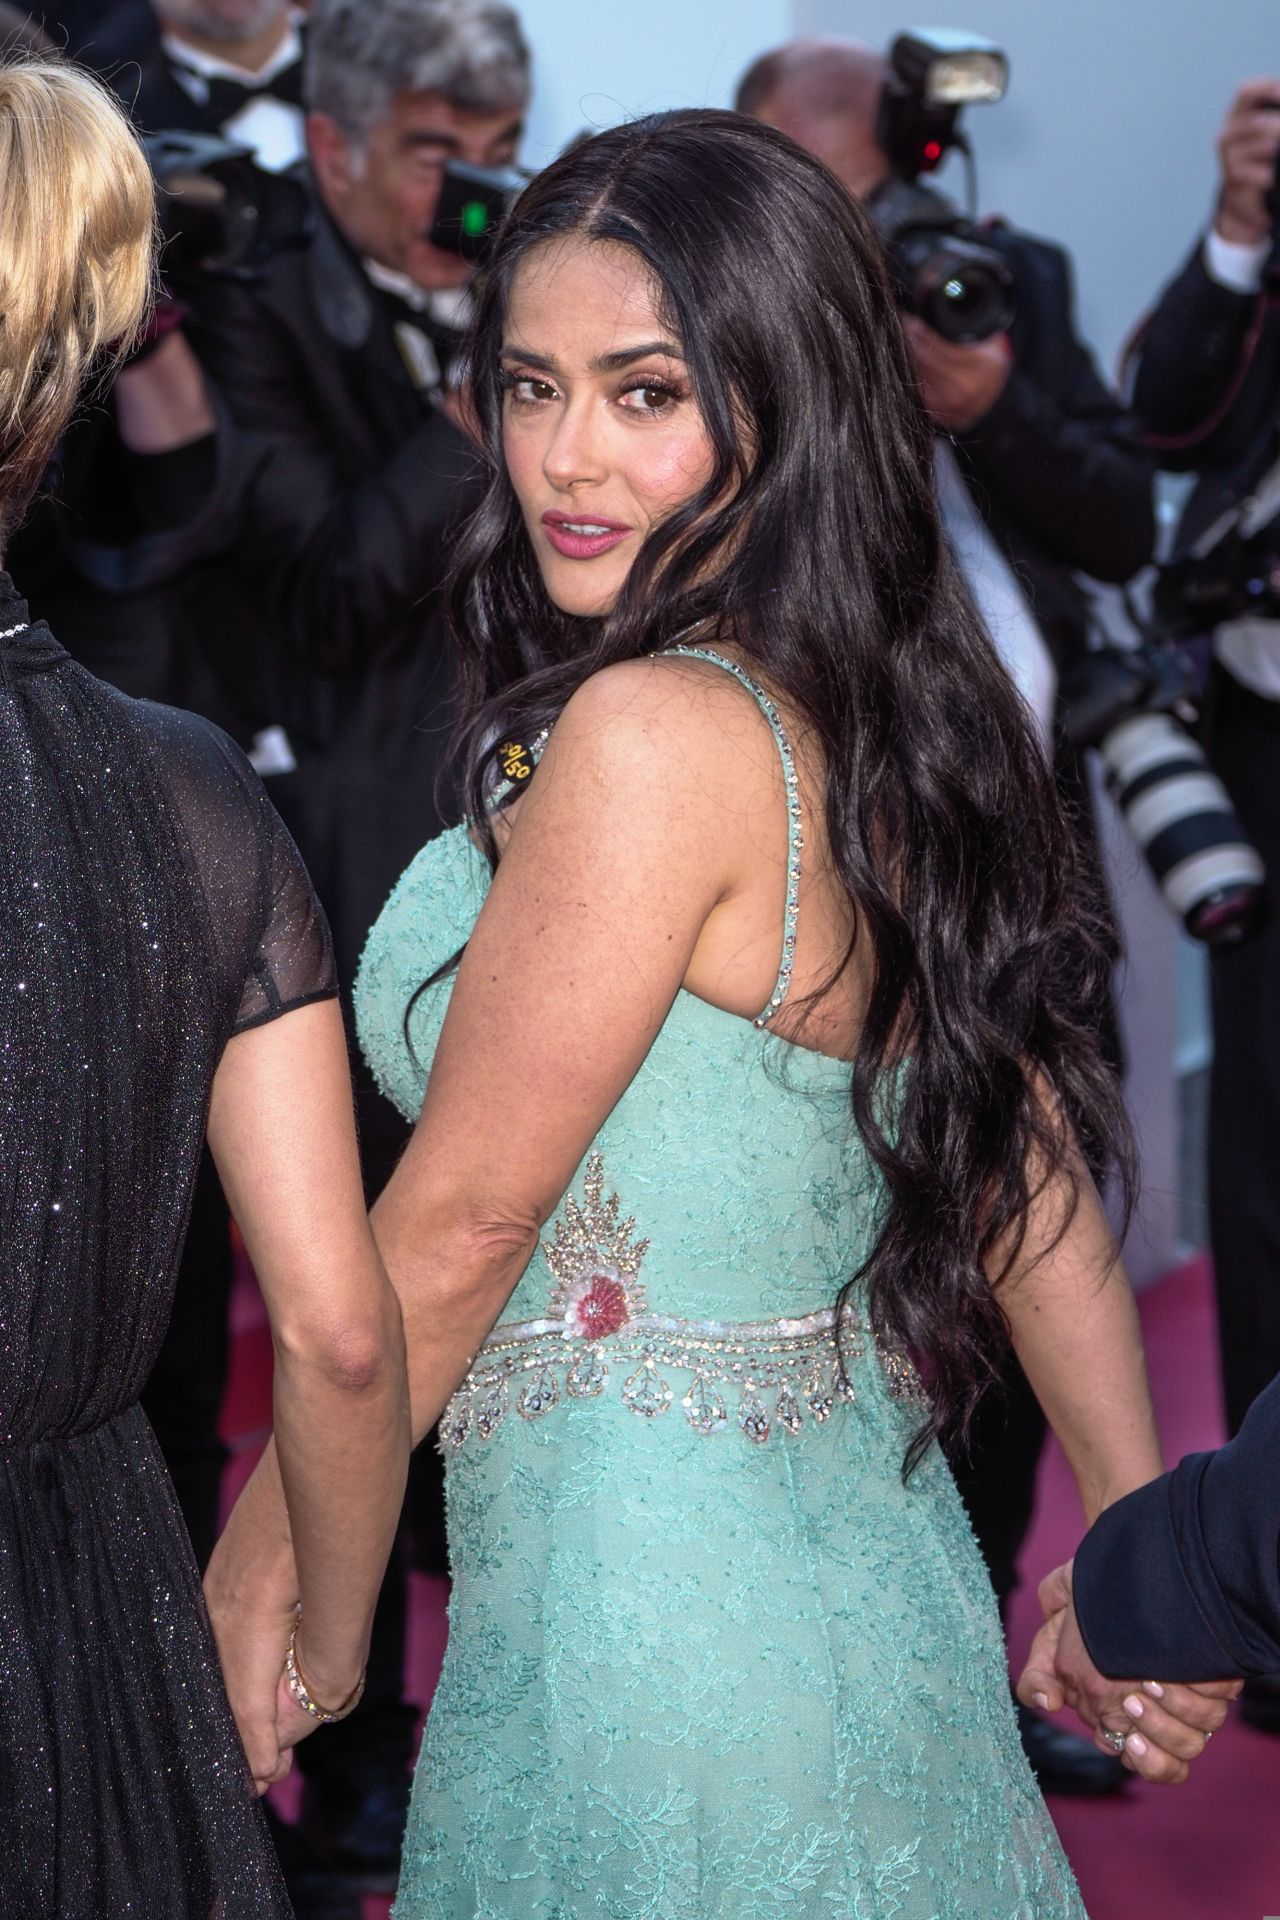 http://celebmafia.com/wp-content/uploads/2018/05/salma-hayek-girls-of-the-sun-premiere-at-cannes-film-festival-8.jpg